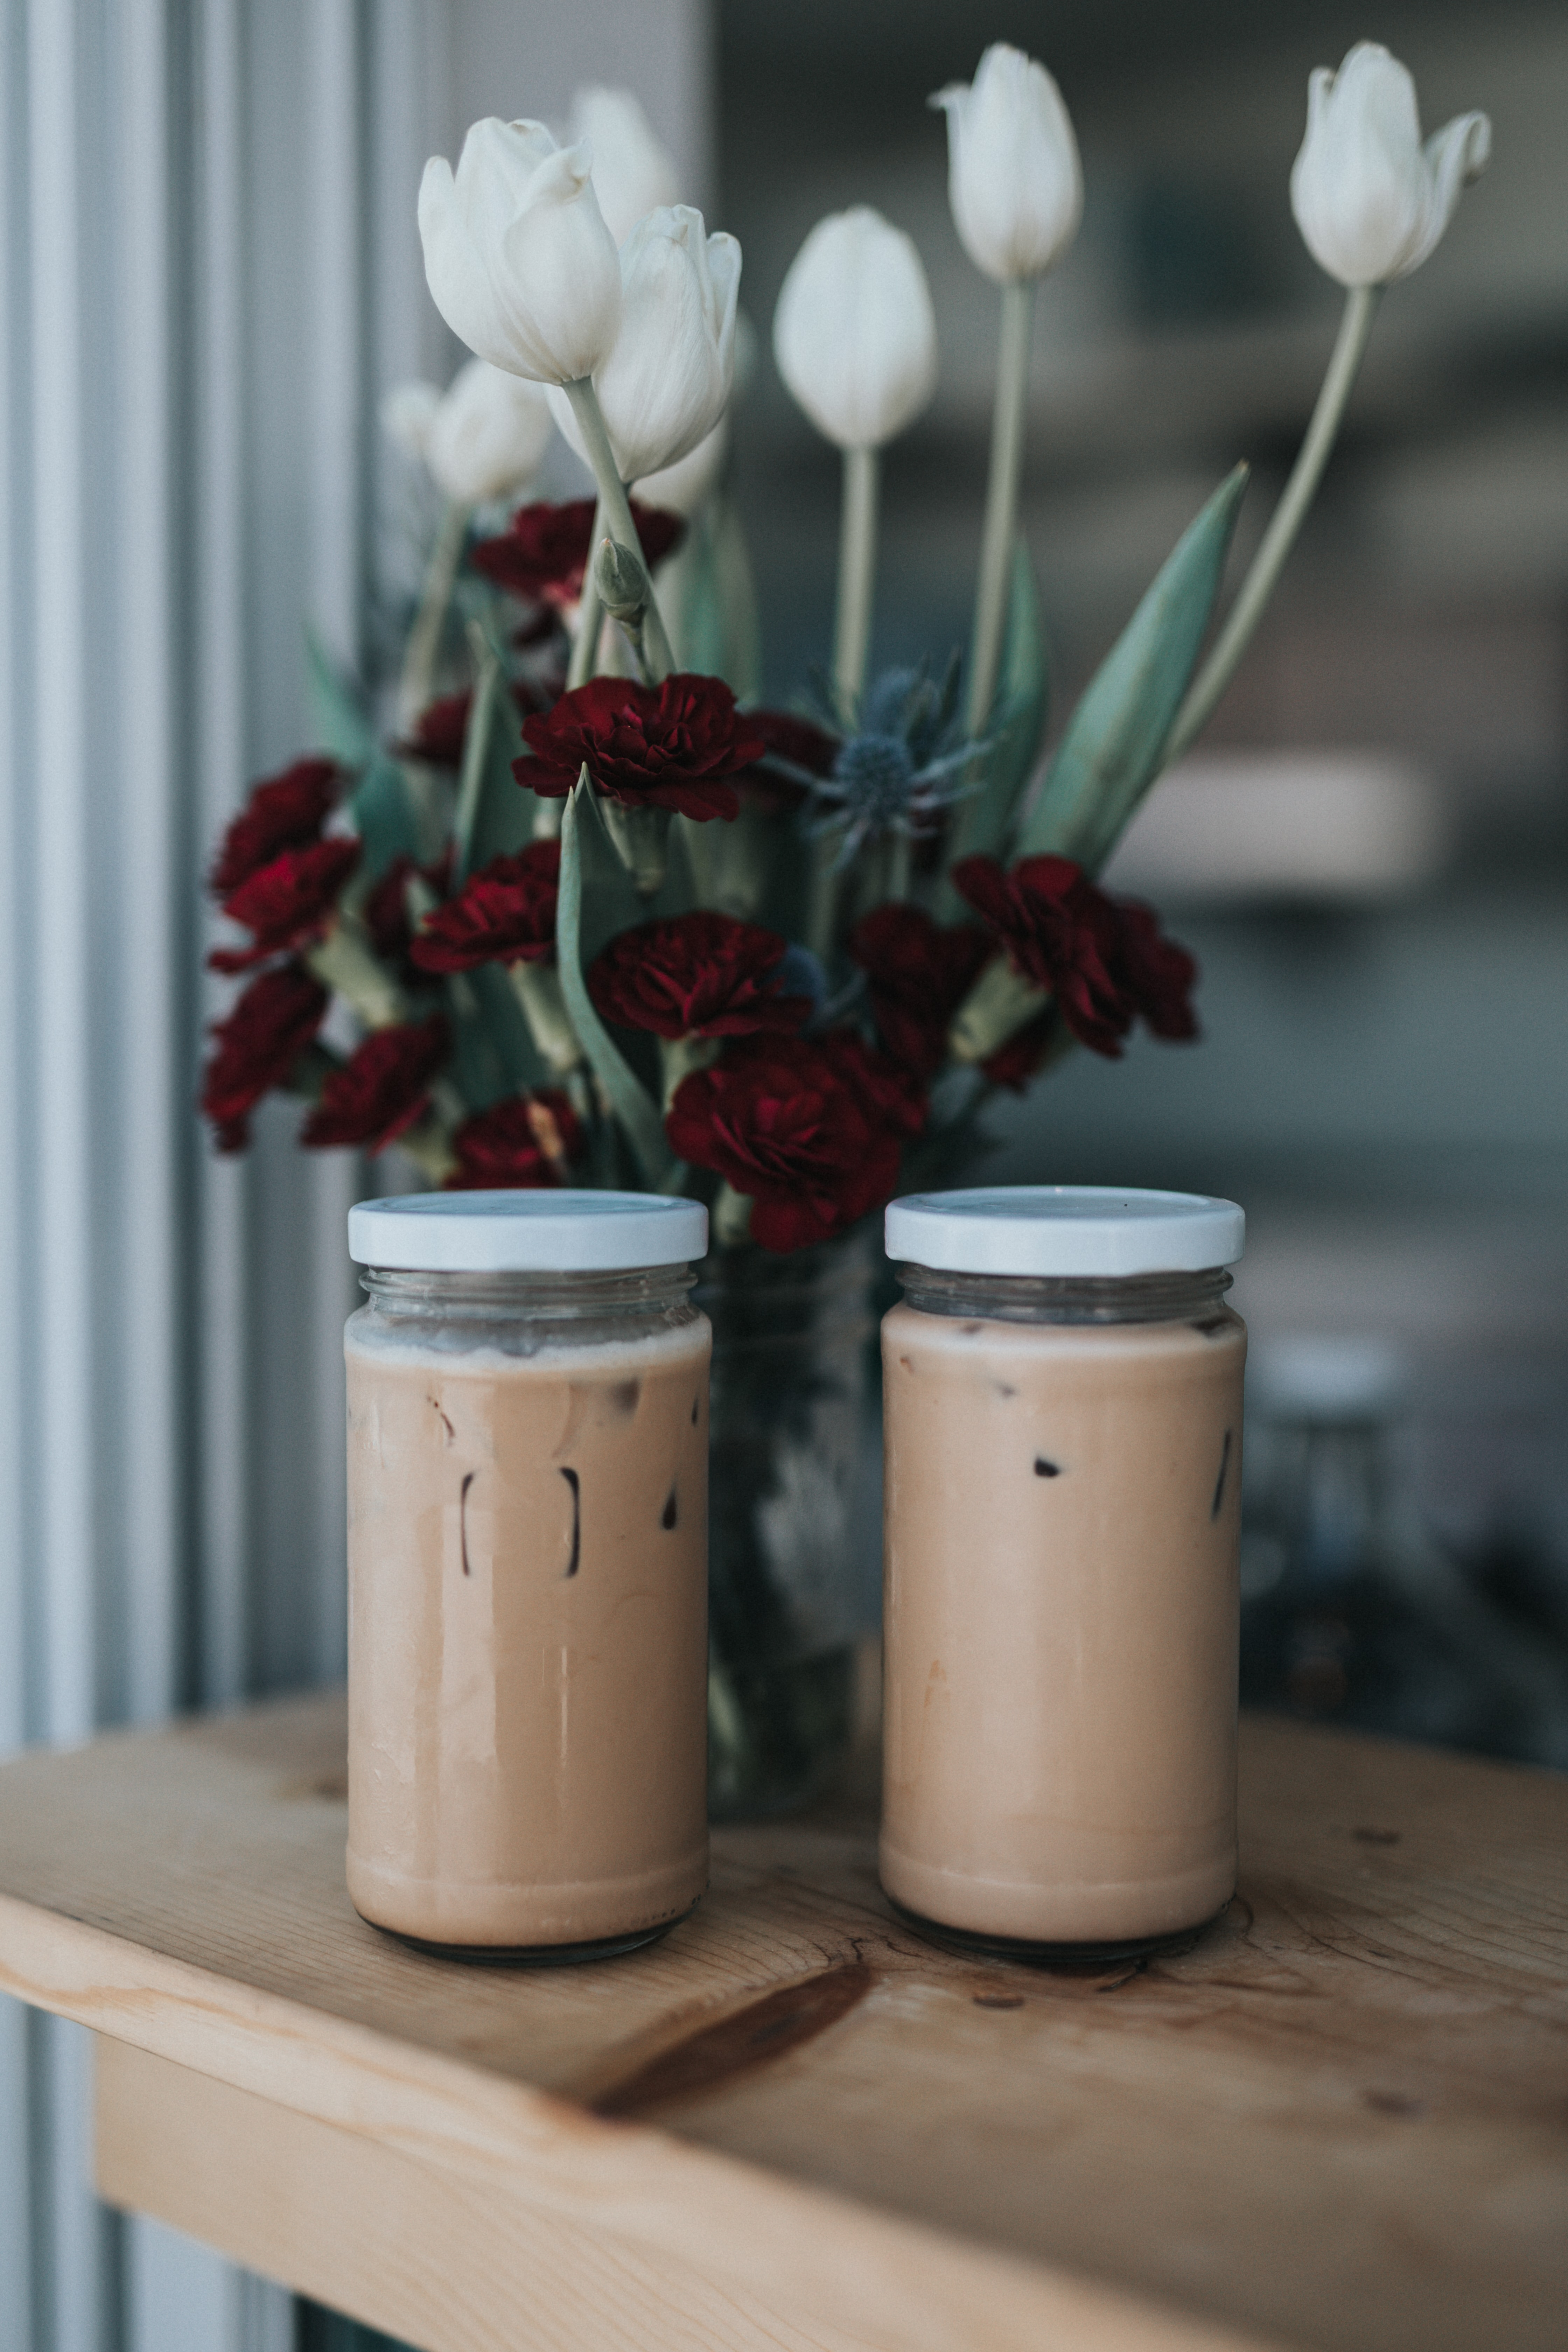 two glass jars on brown surface